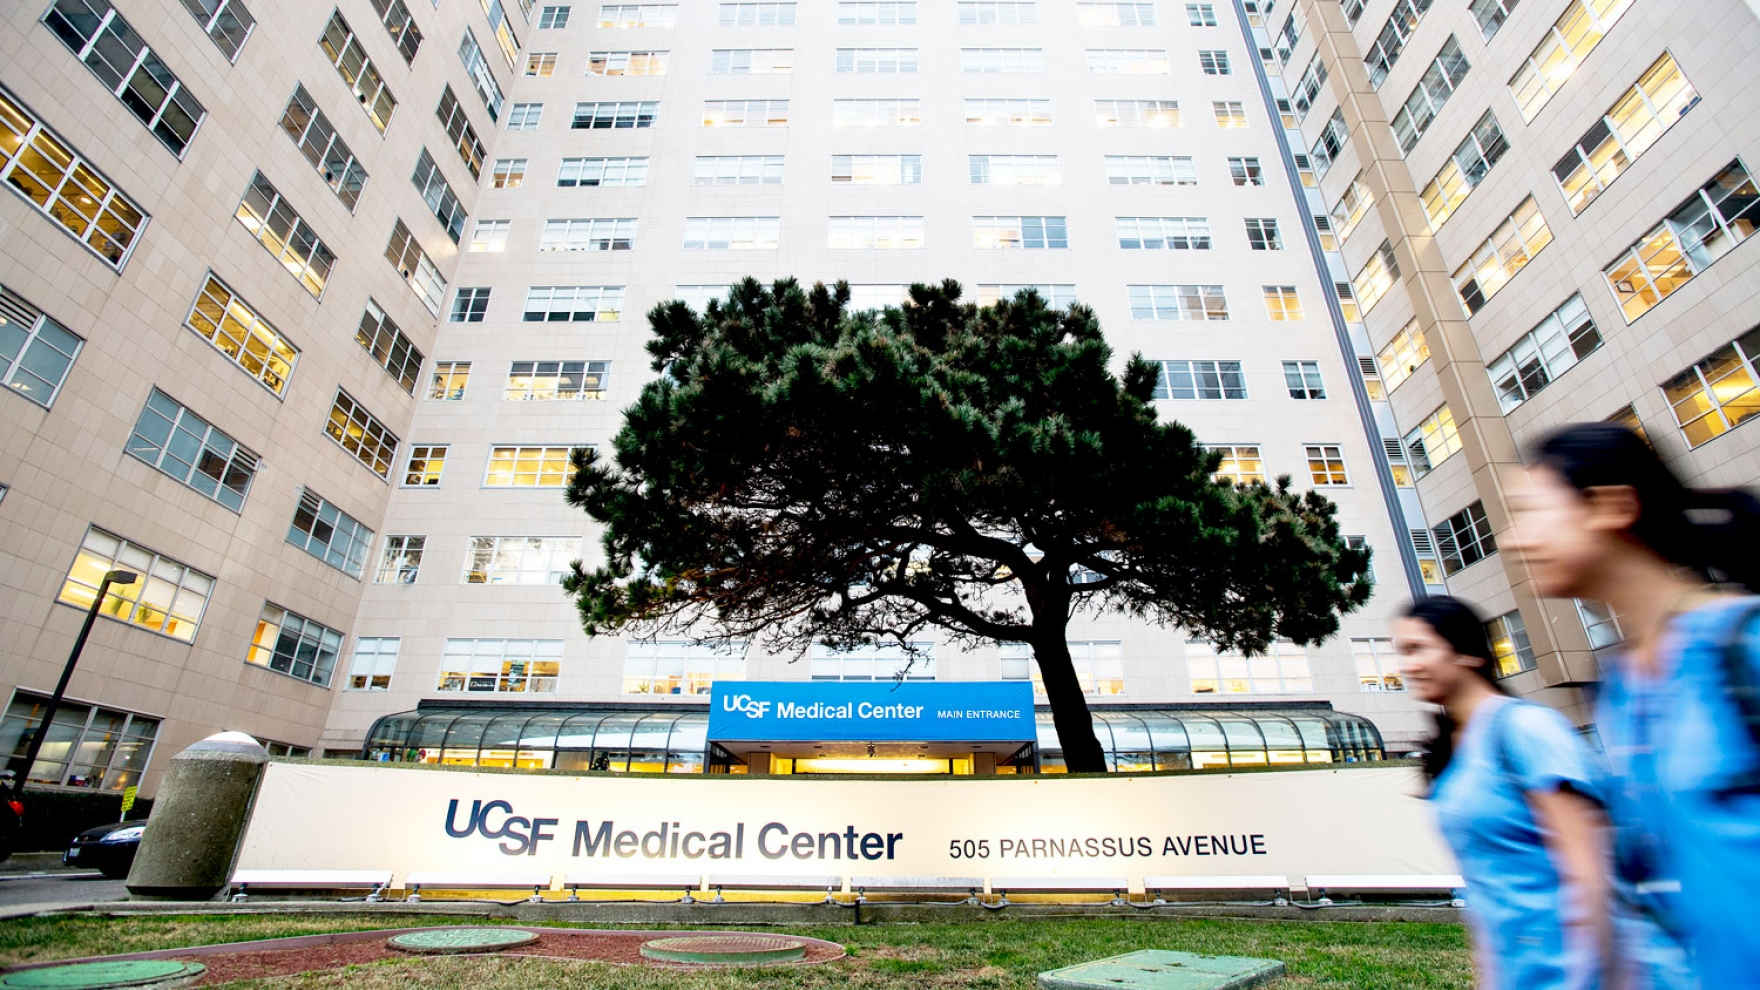 exterior of UCSF Medical Center at Parnassus Heights